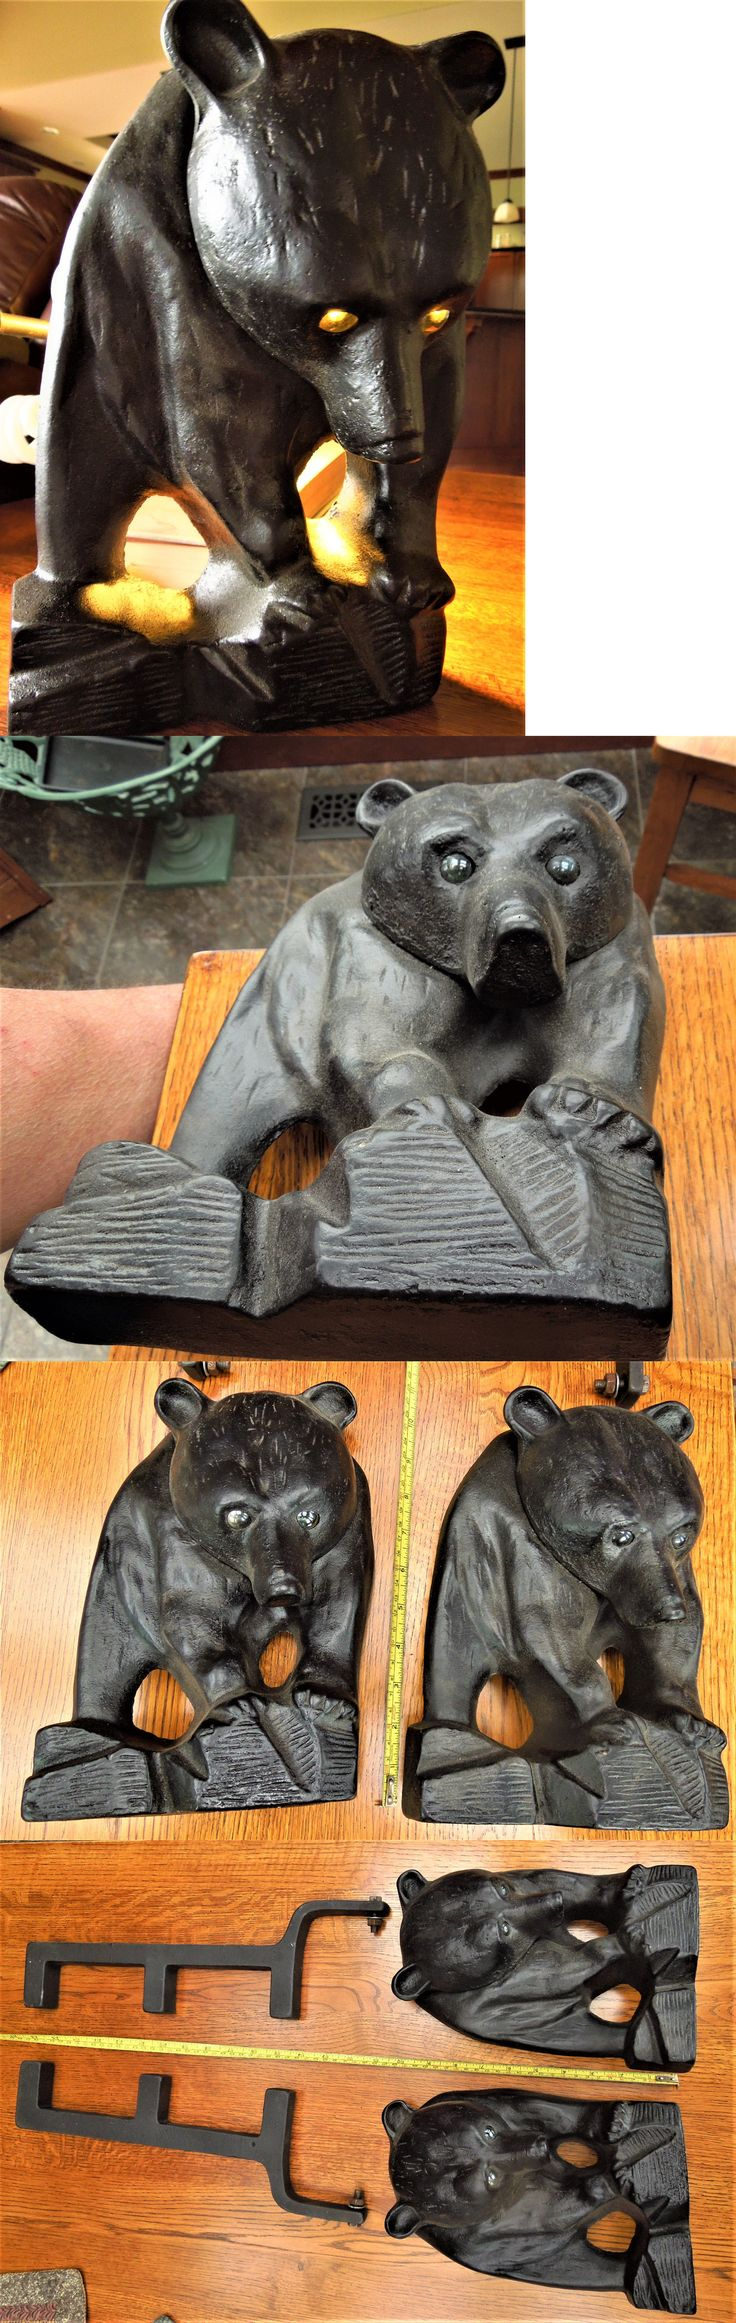 Andirons Grates and Firedogs 79648: Cast Iron Black Bear Fireplace Andirons Firedogs Fire Dog -> BUY IT NOW ONLY: $199.95 on eBay!